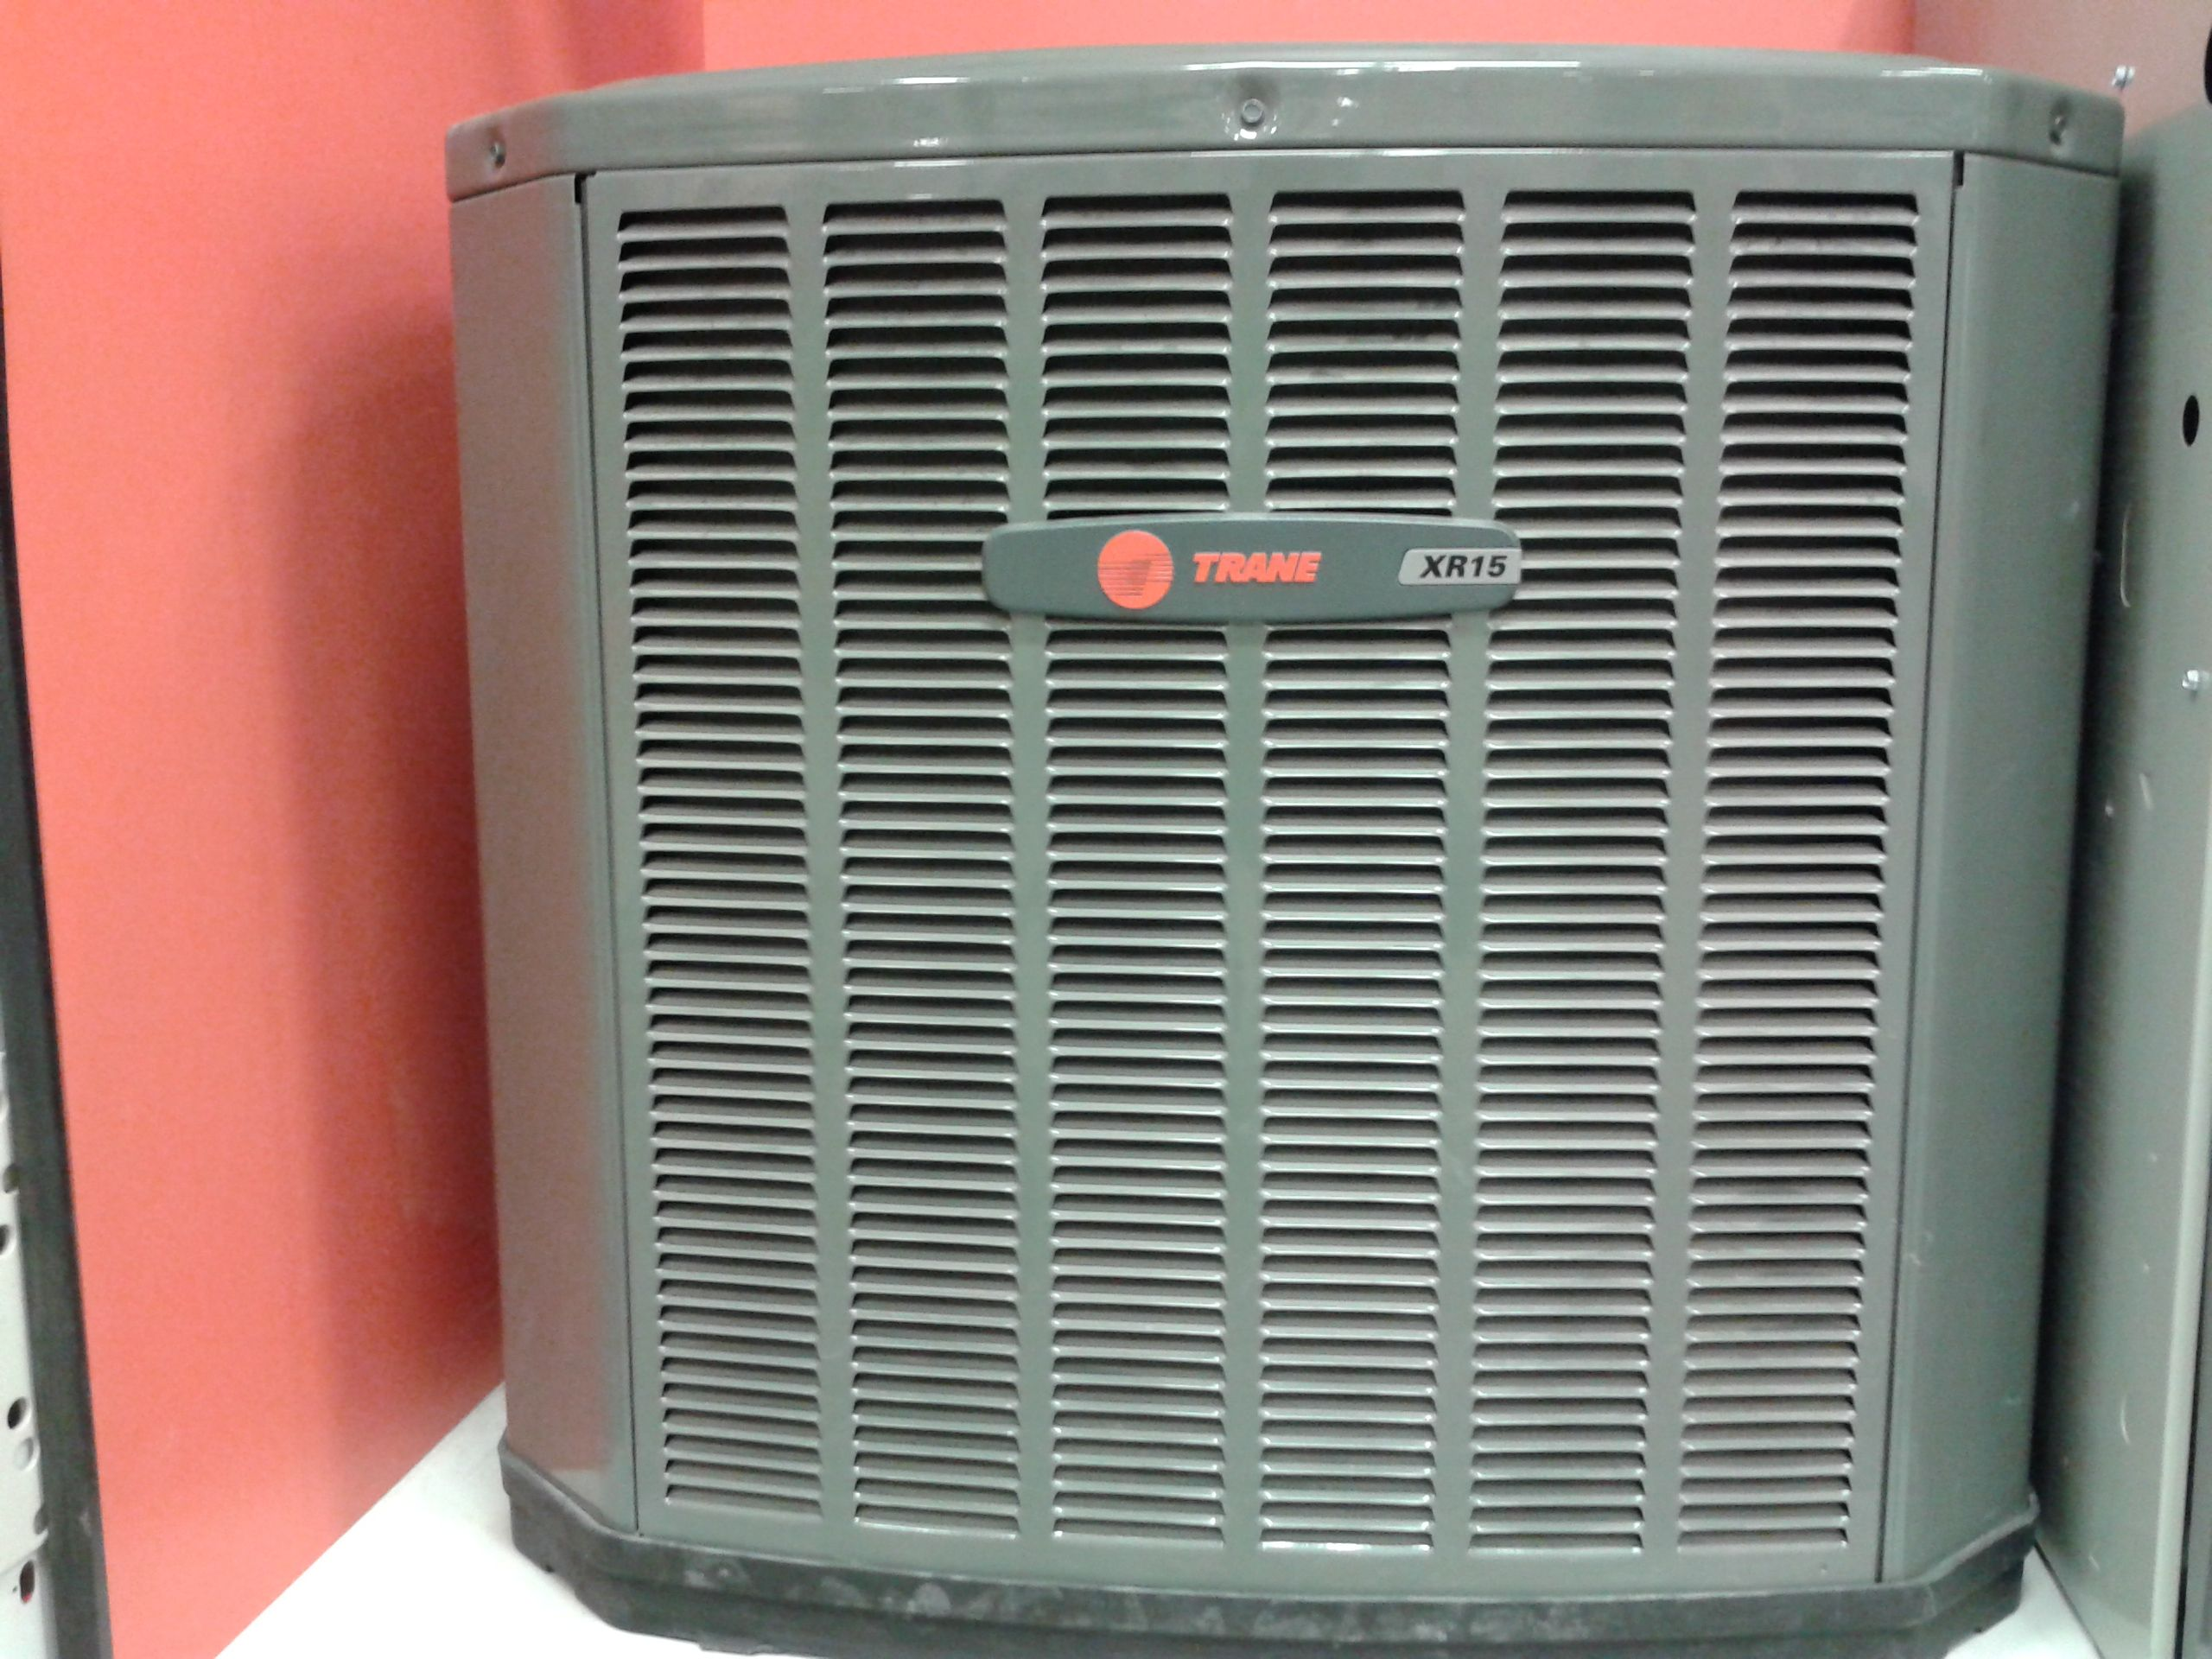 1 brand Trane highefficiency AC working perfect for